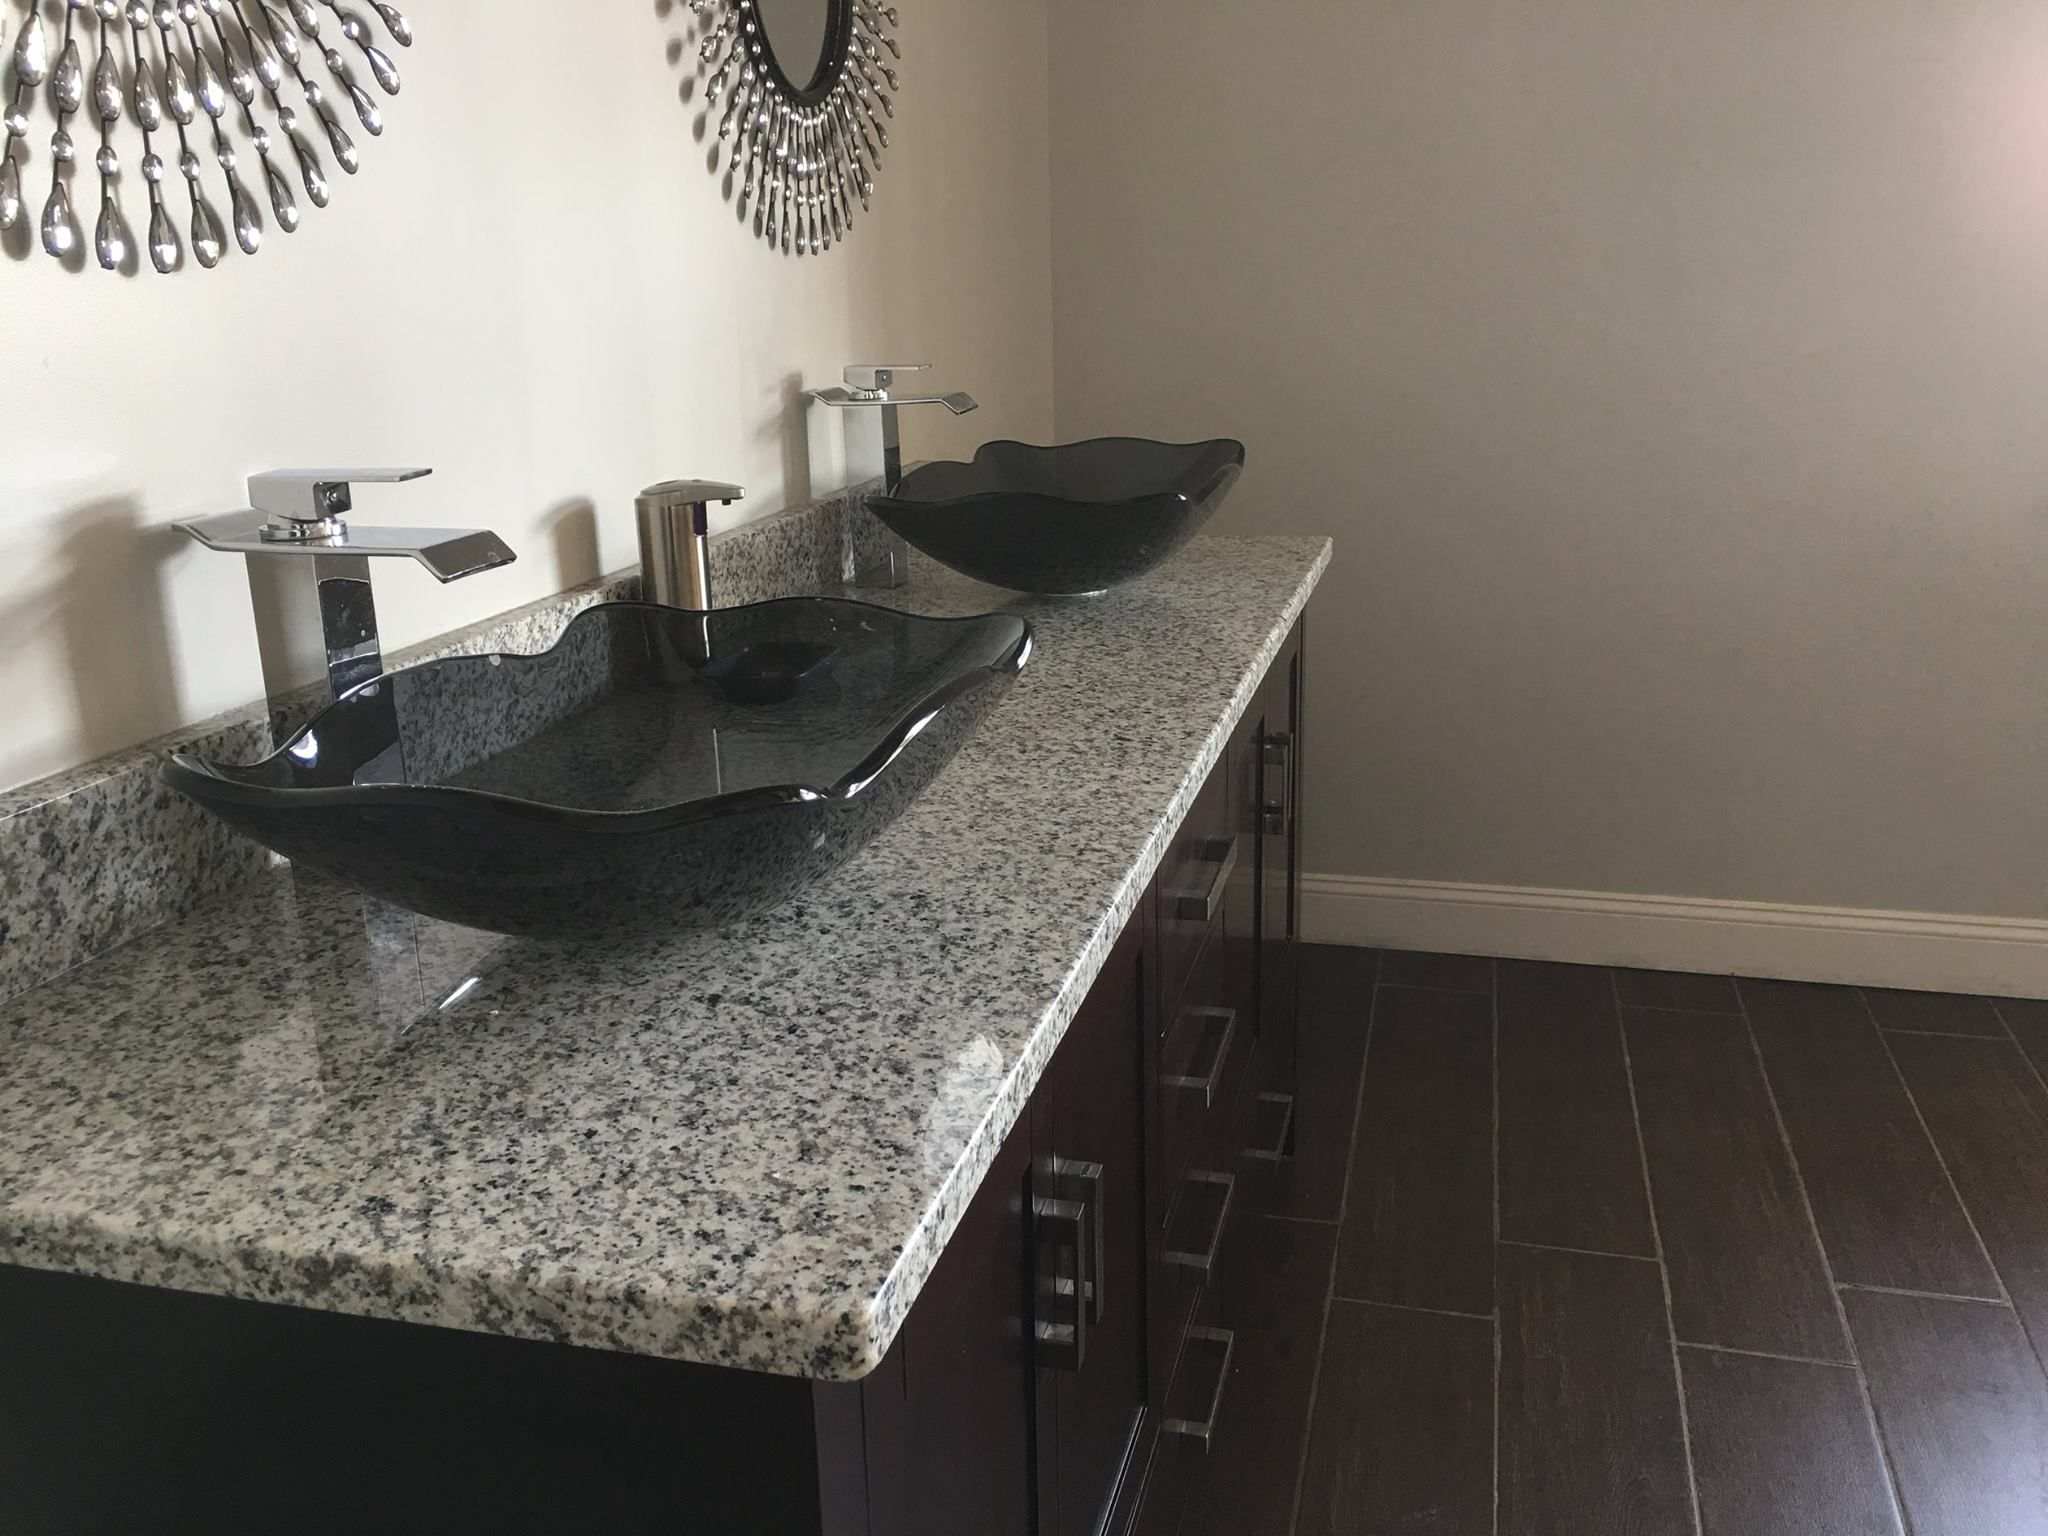 White Black Grey Marble Countertop Granite Film Self Adhesive Vinyl Laminate Counter Top Ezfaux Decor Llc Countertops Marble Countertops Laminate Counter